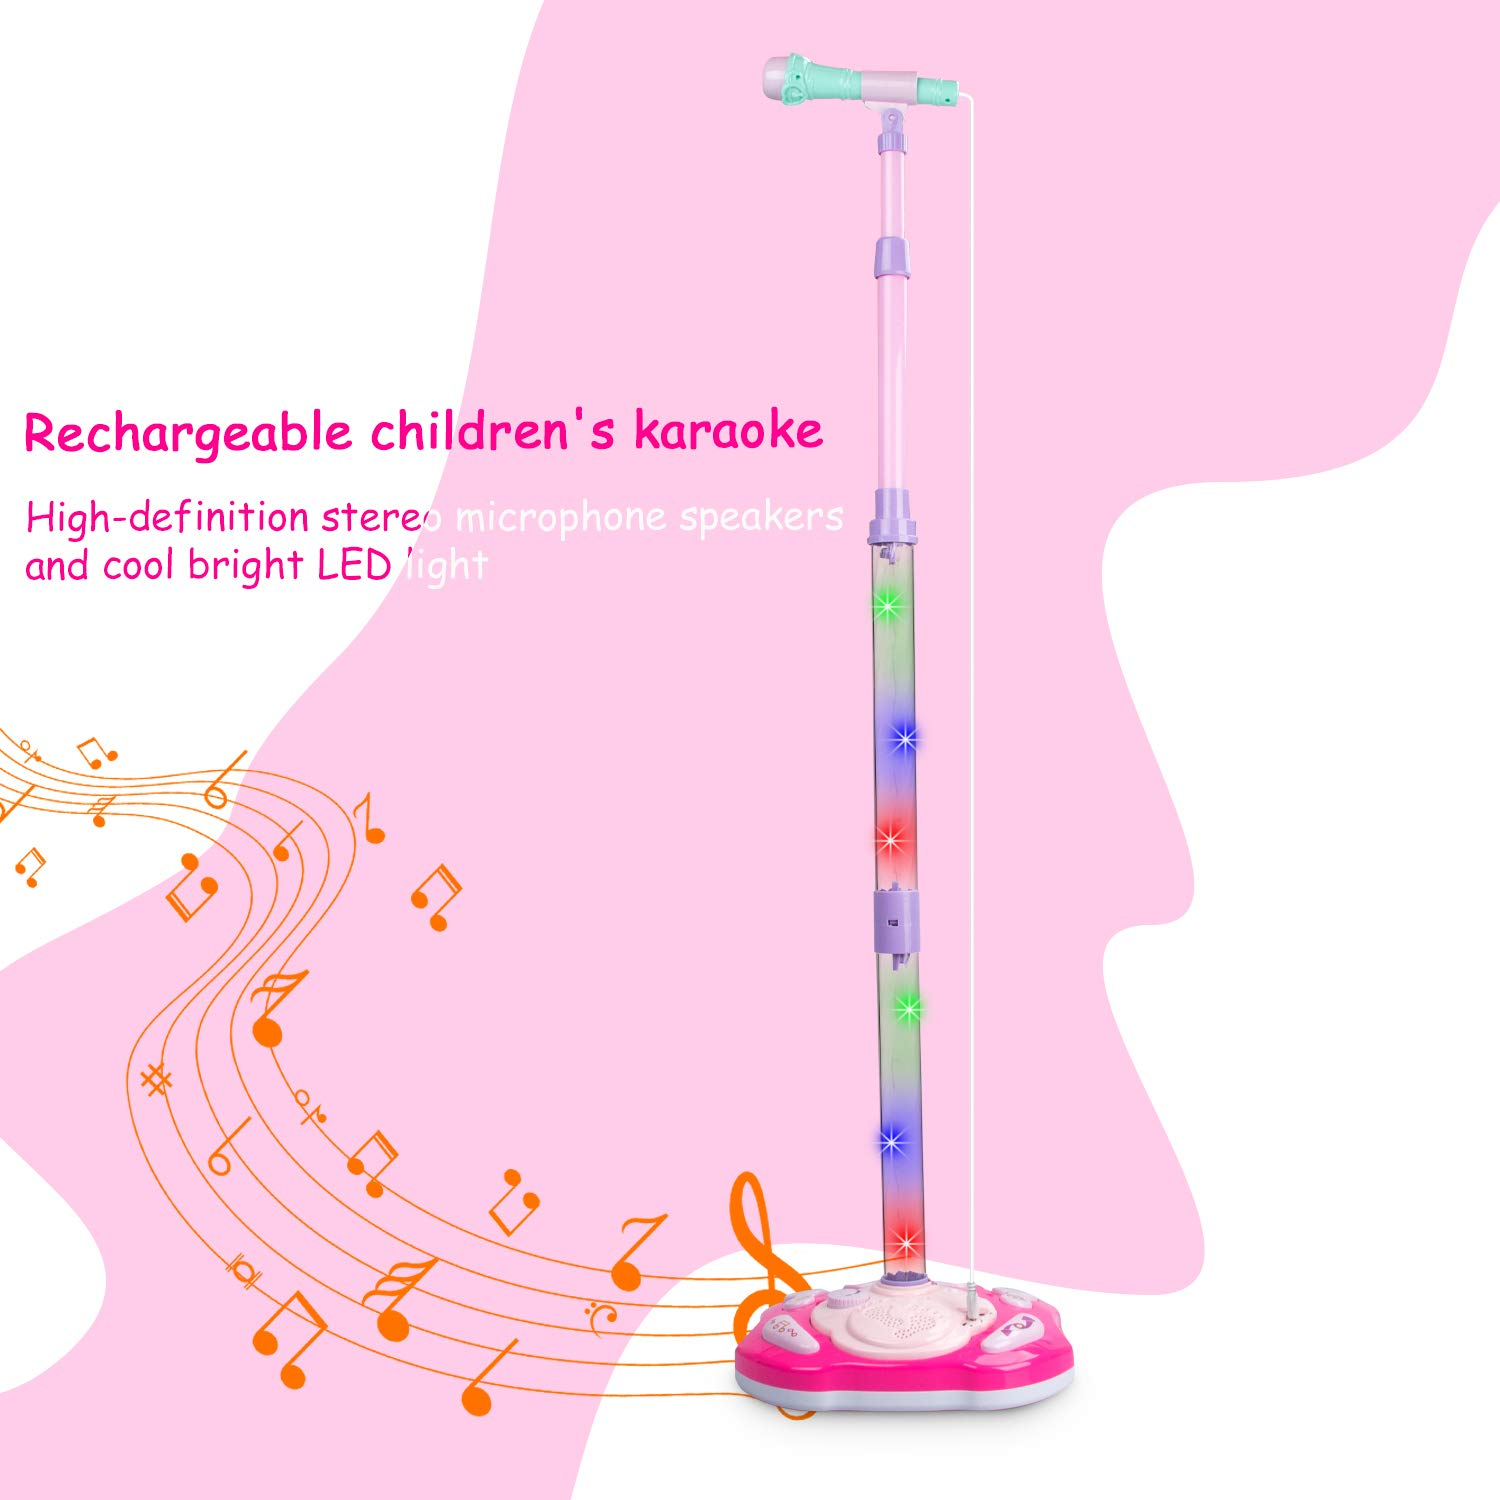 aPerfectLife Rechargeable Kids Karaoke Machine, Kids Microphone Music Toy Play Set with Microphone & Adjustable Stand, AUX Cable Connect to Electronic Devices by aPerfectLife (Image #2)